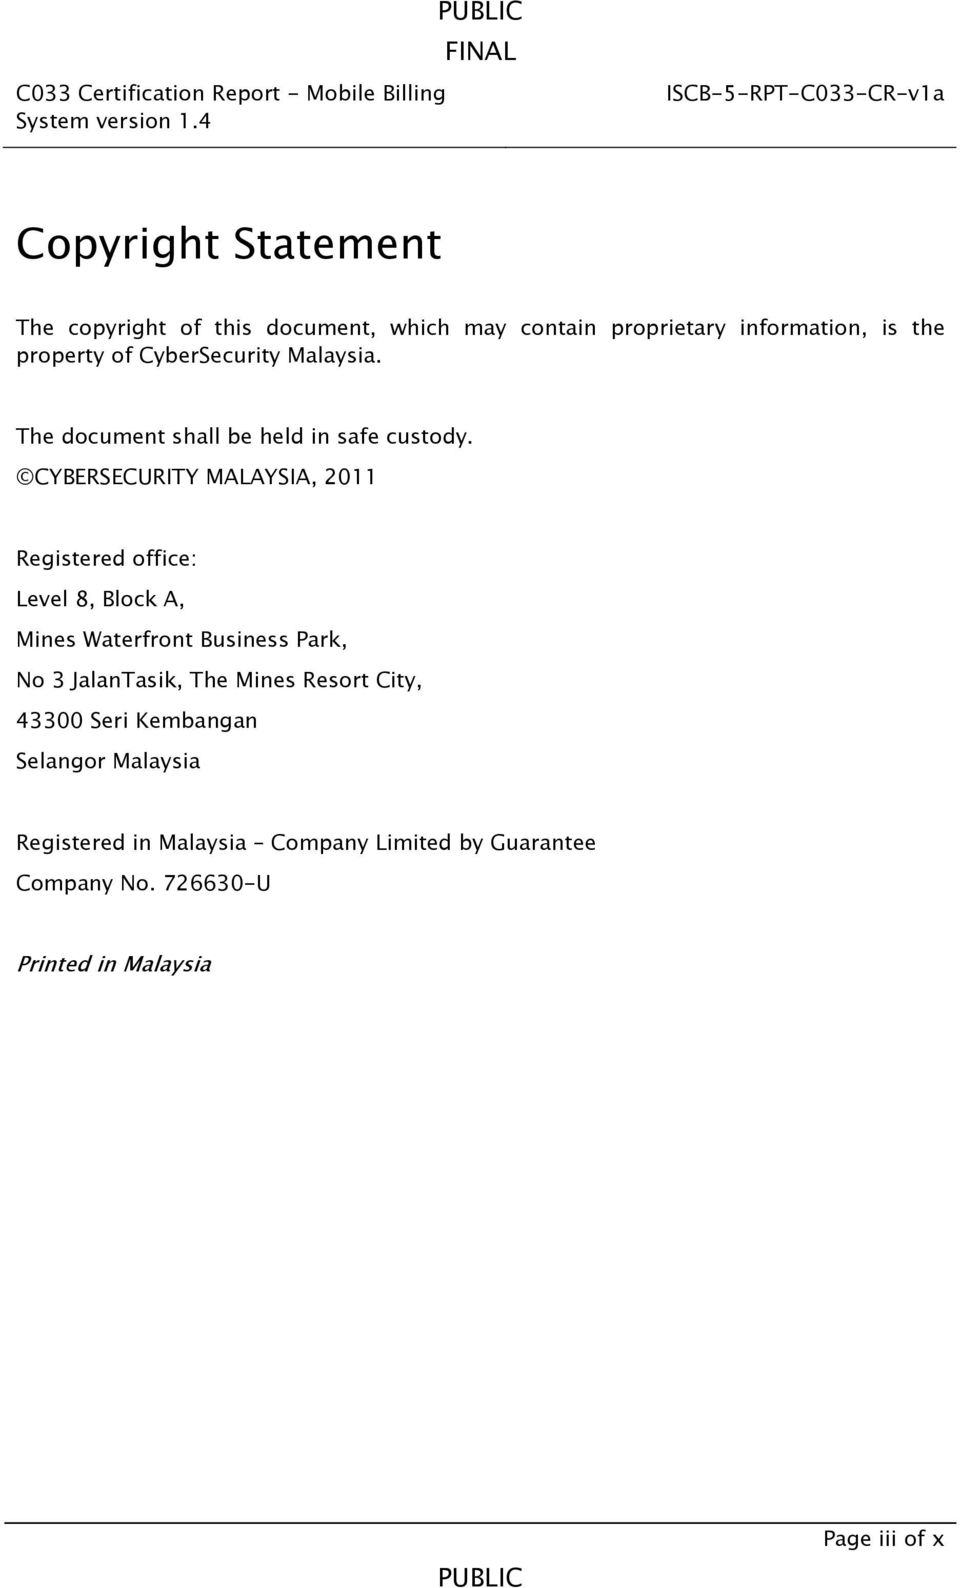 CYBERSECURITY MALAYSIA, 2011 Registered office: Level 8, Block A, Mines Waterfront Business Park, No 3 JalanTasik, The Mines